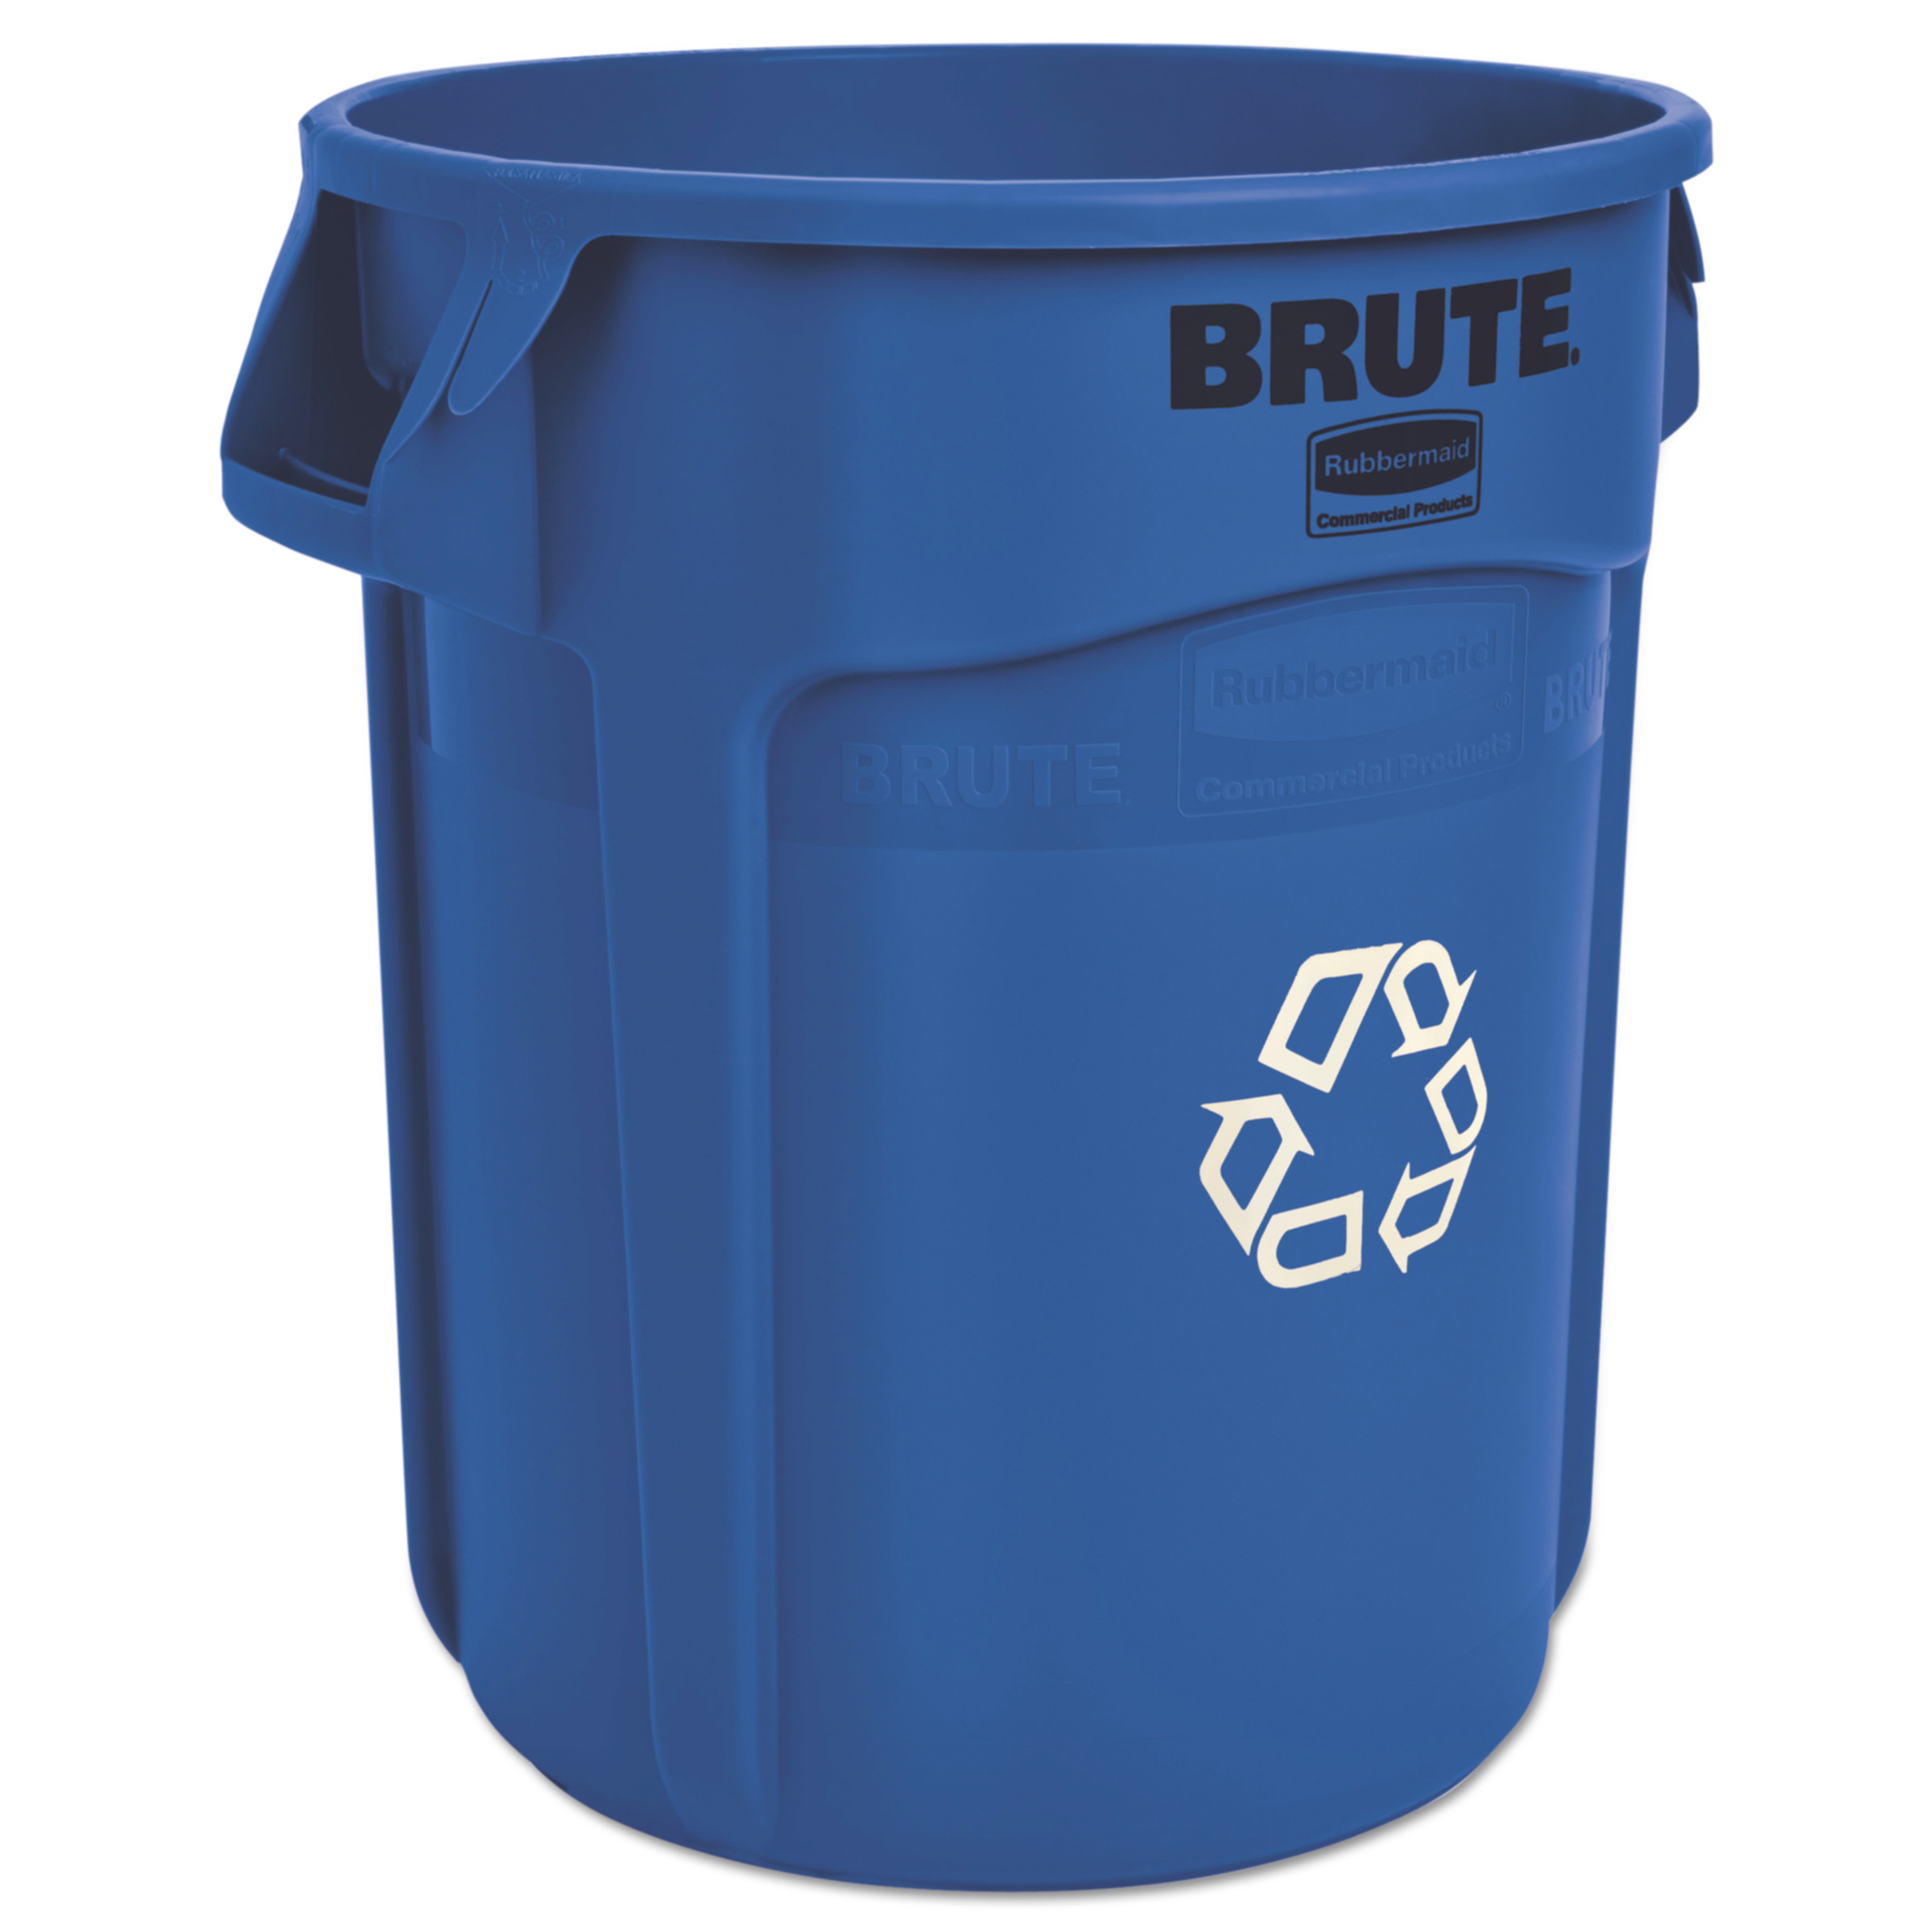 Rubbermaid Commercial Brute Recycling Container  Round  20 gal  Blue. Blue Trash Cans   Recycle Bins   Walmart com